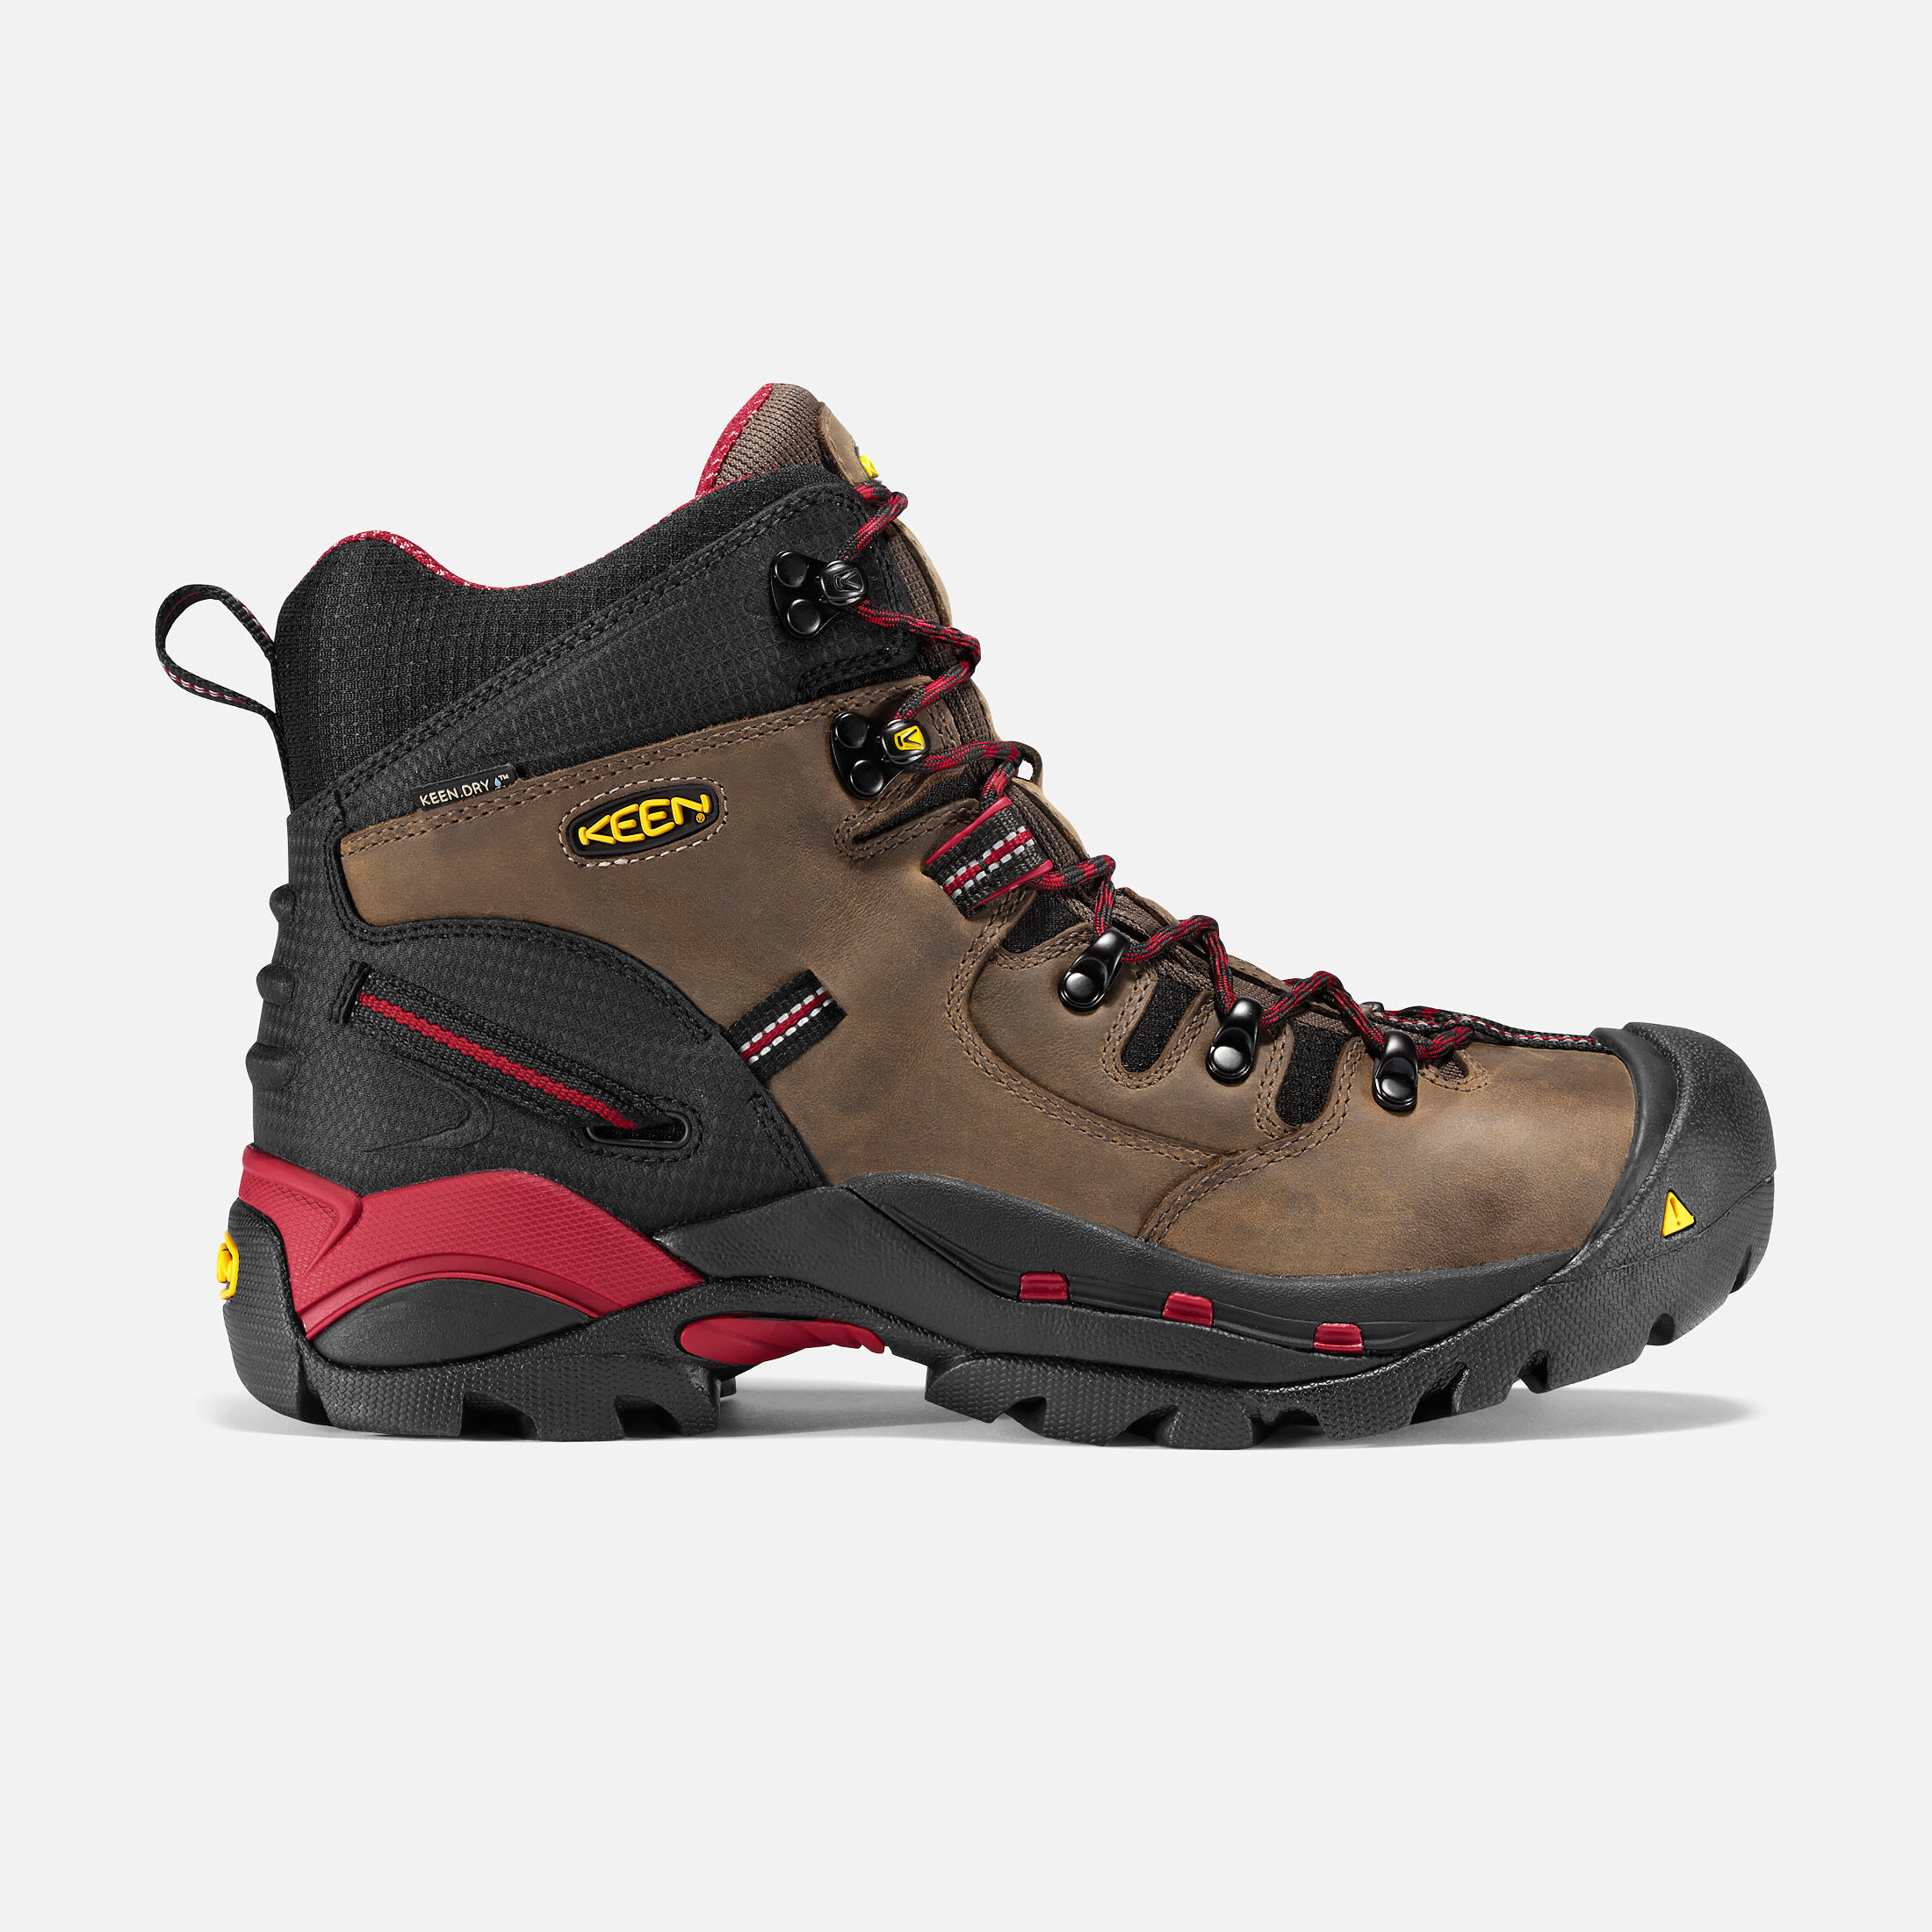 Keen Shoes Japan